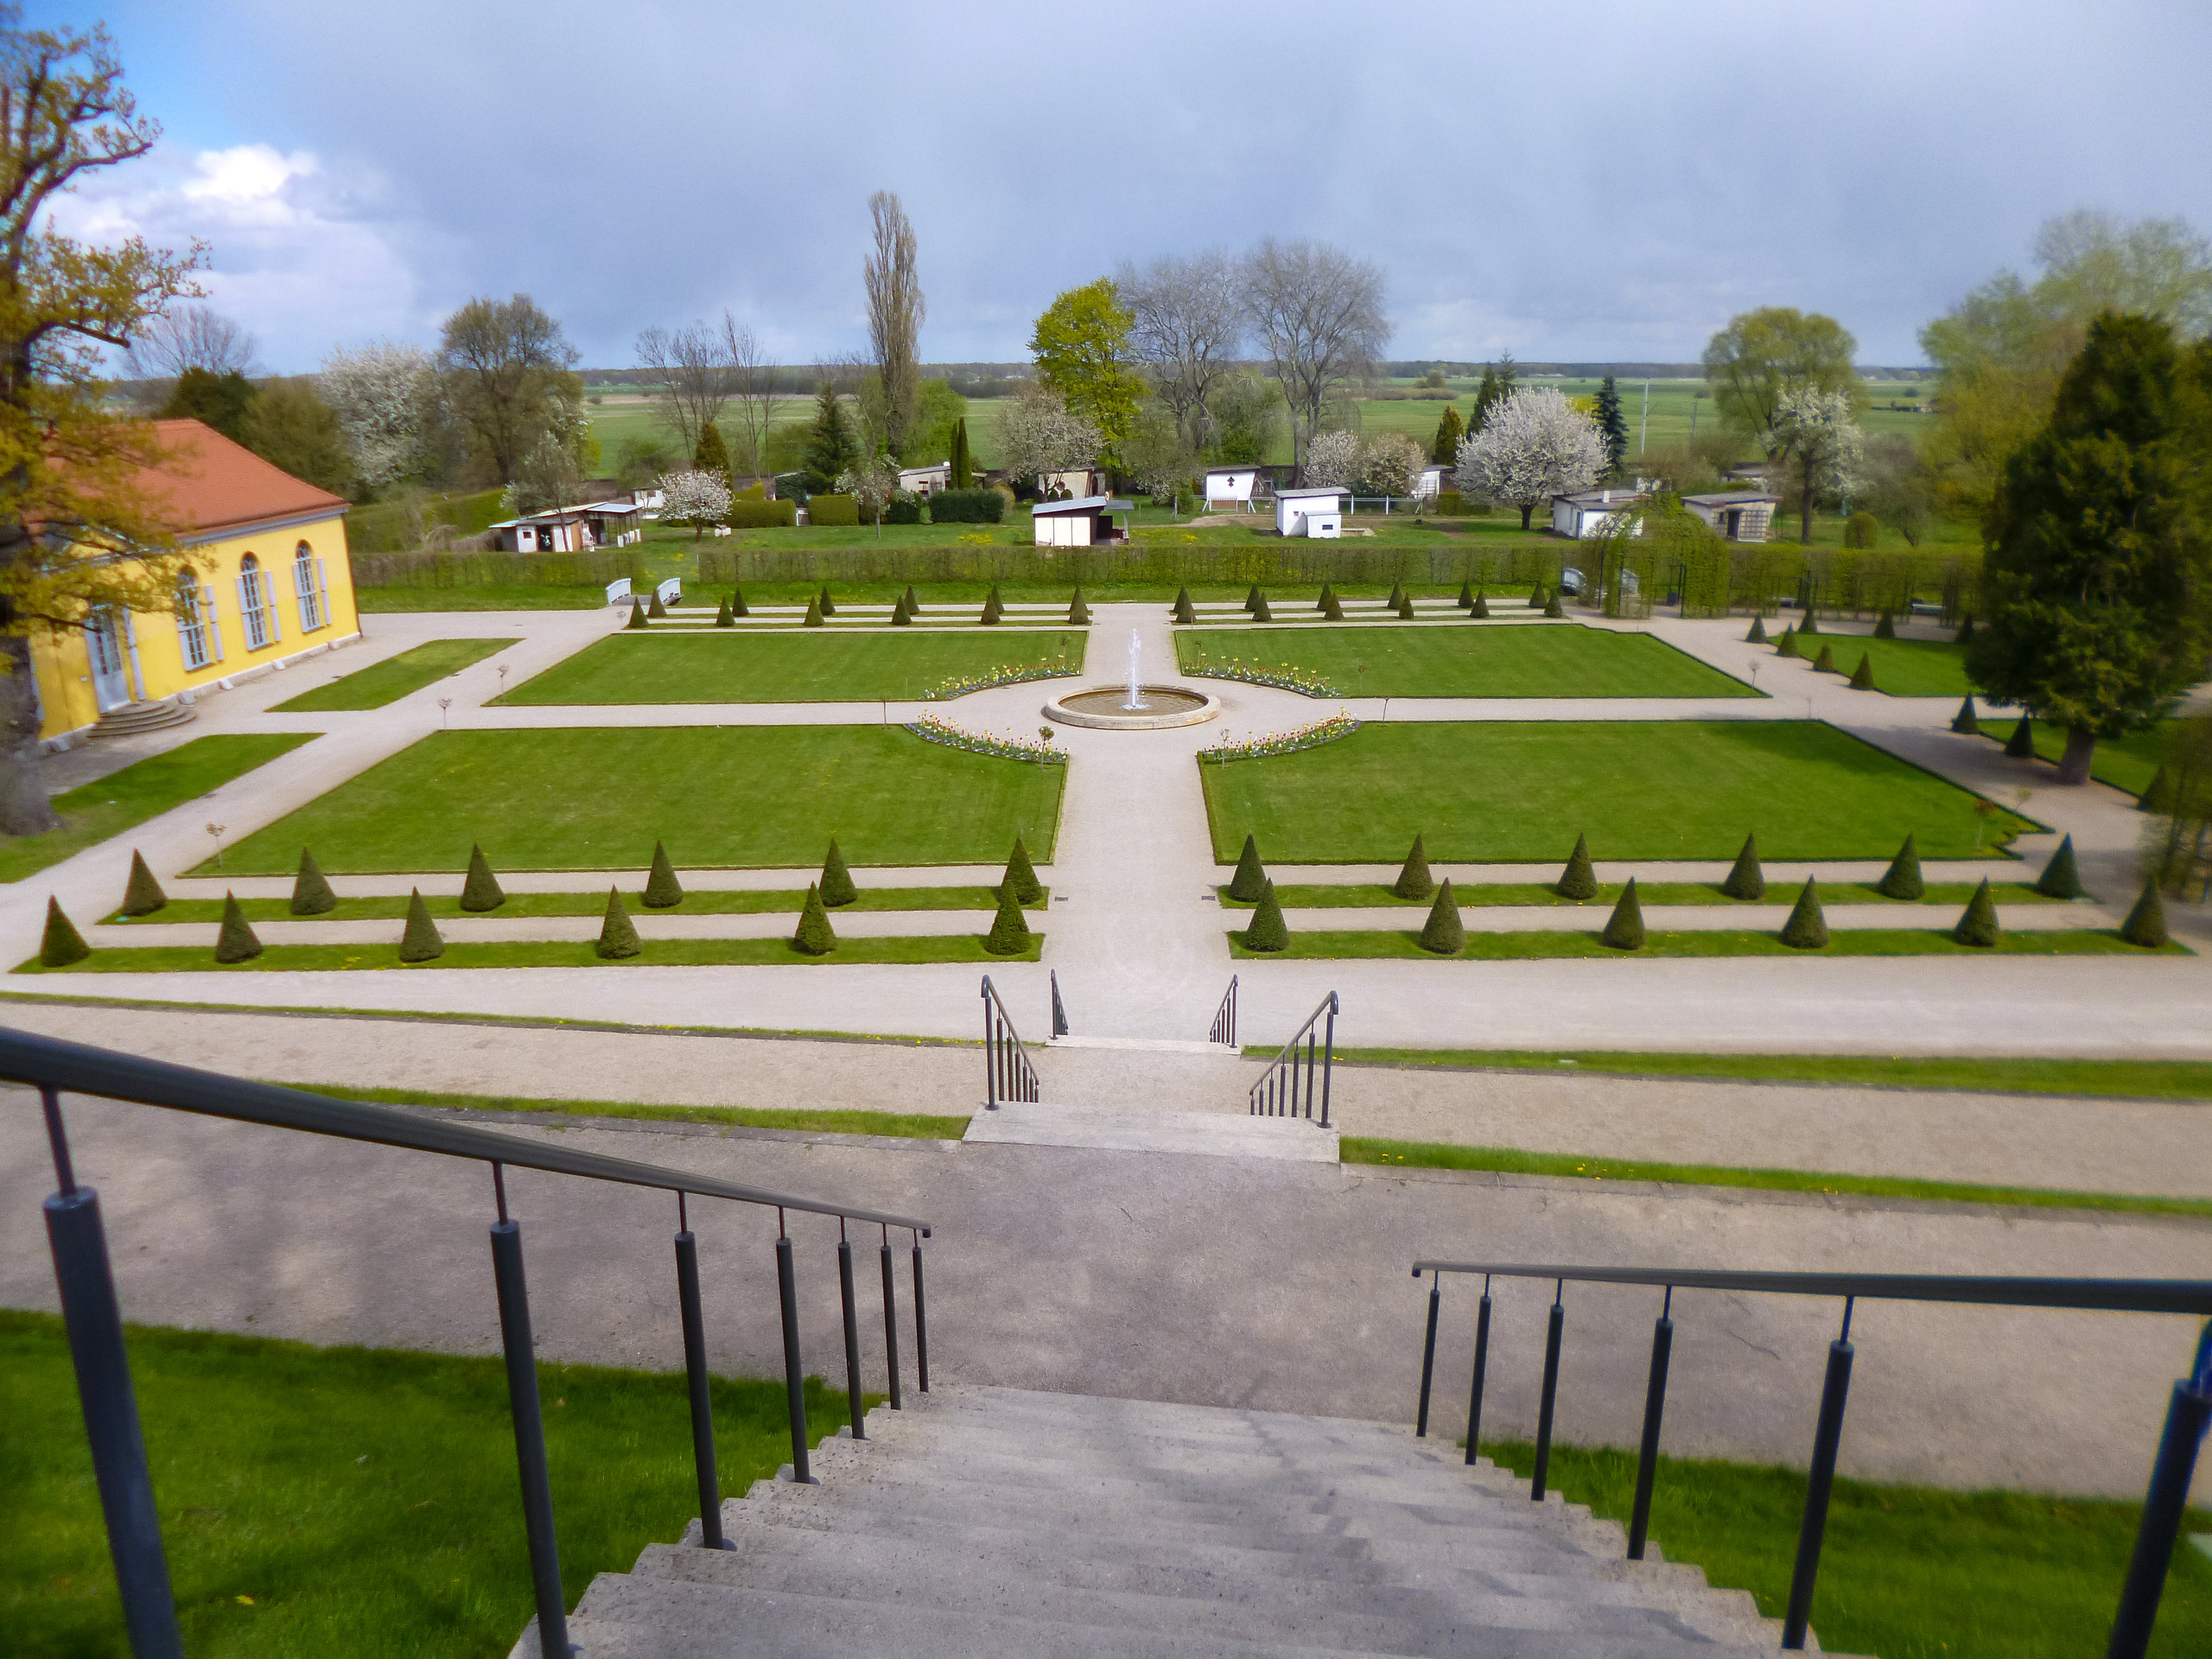 Neuzelle Abbey on the Oder Neisse cycle path Germany